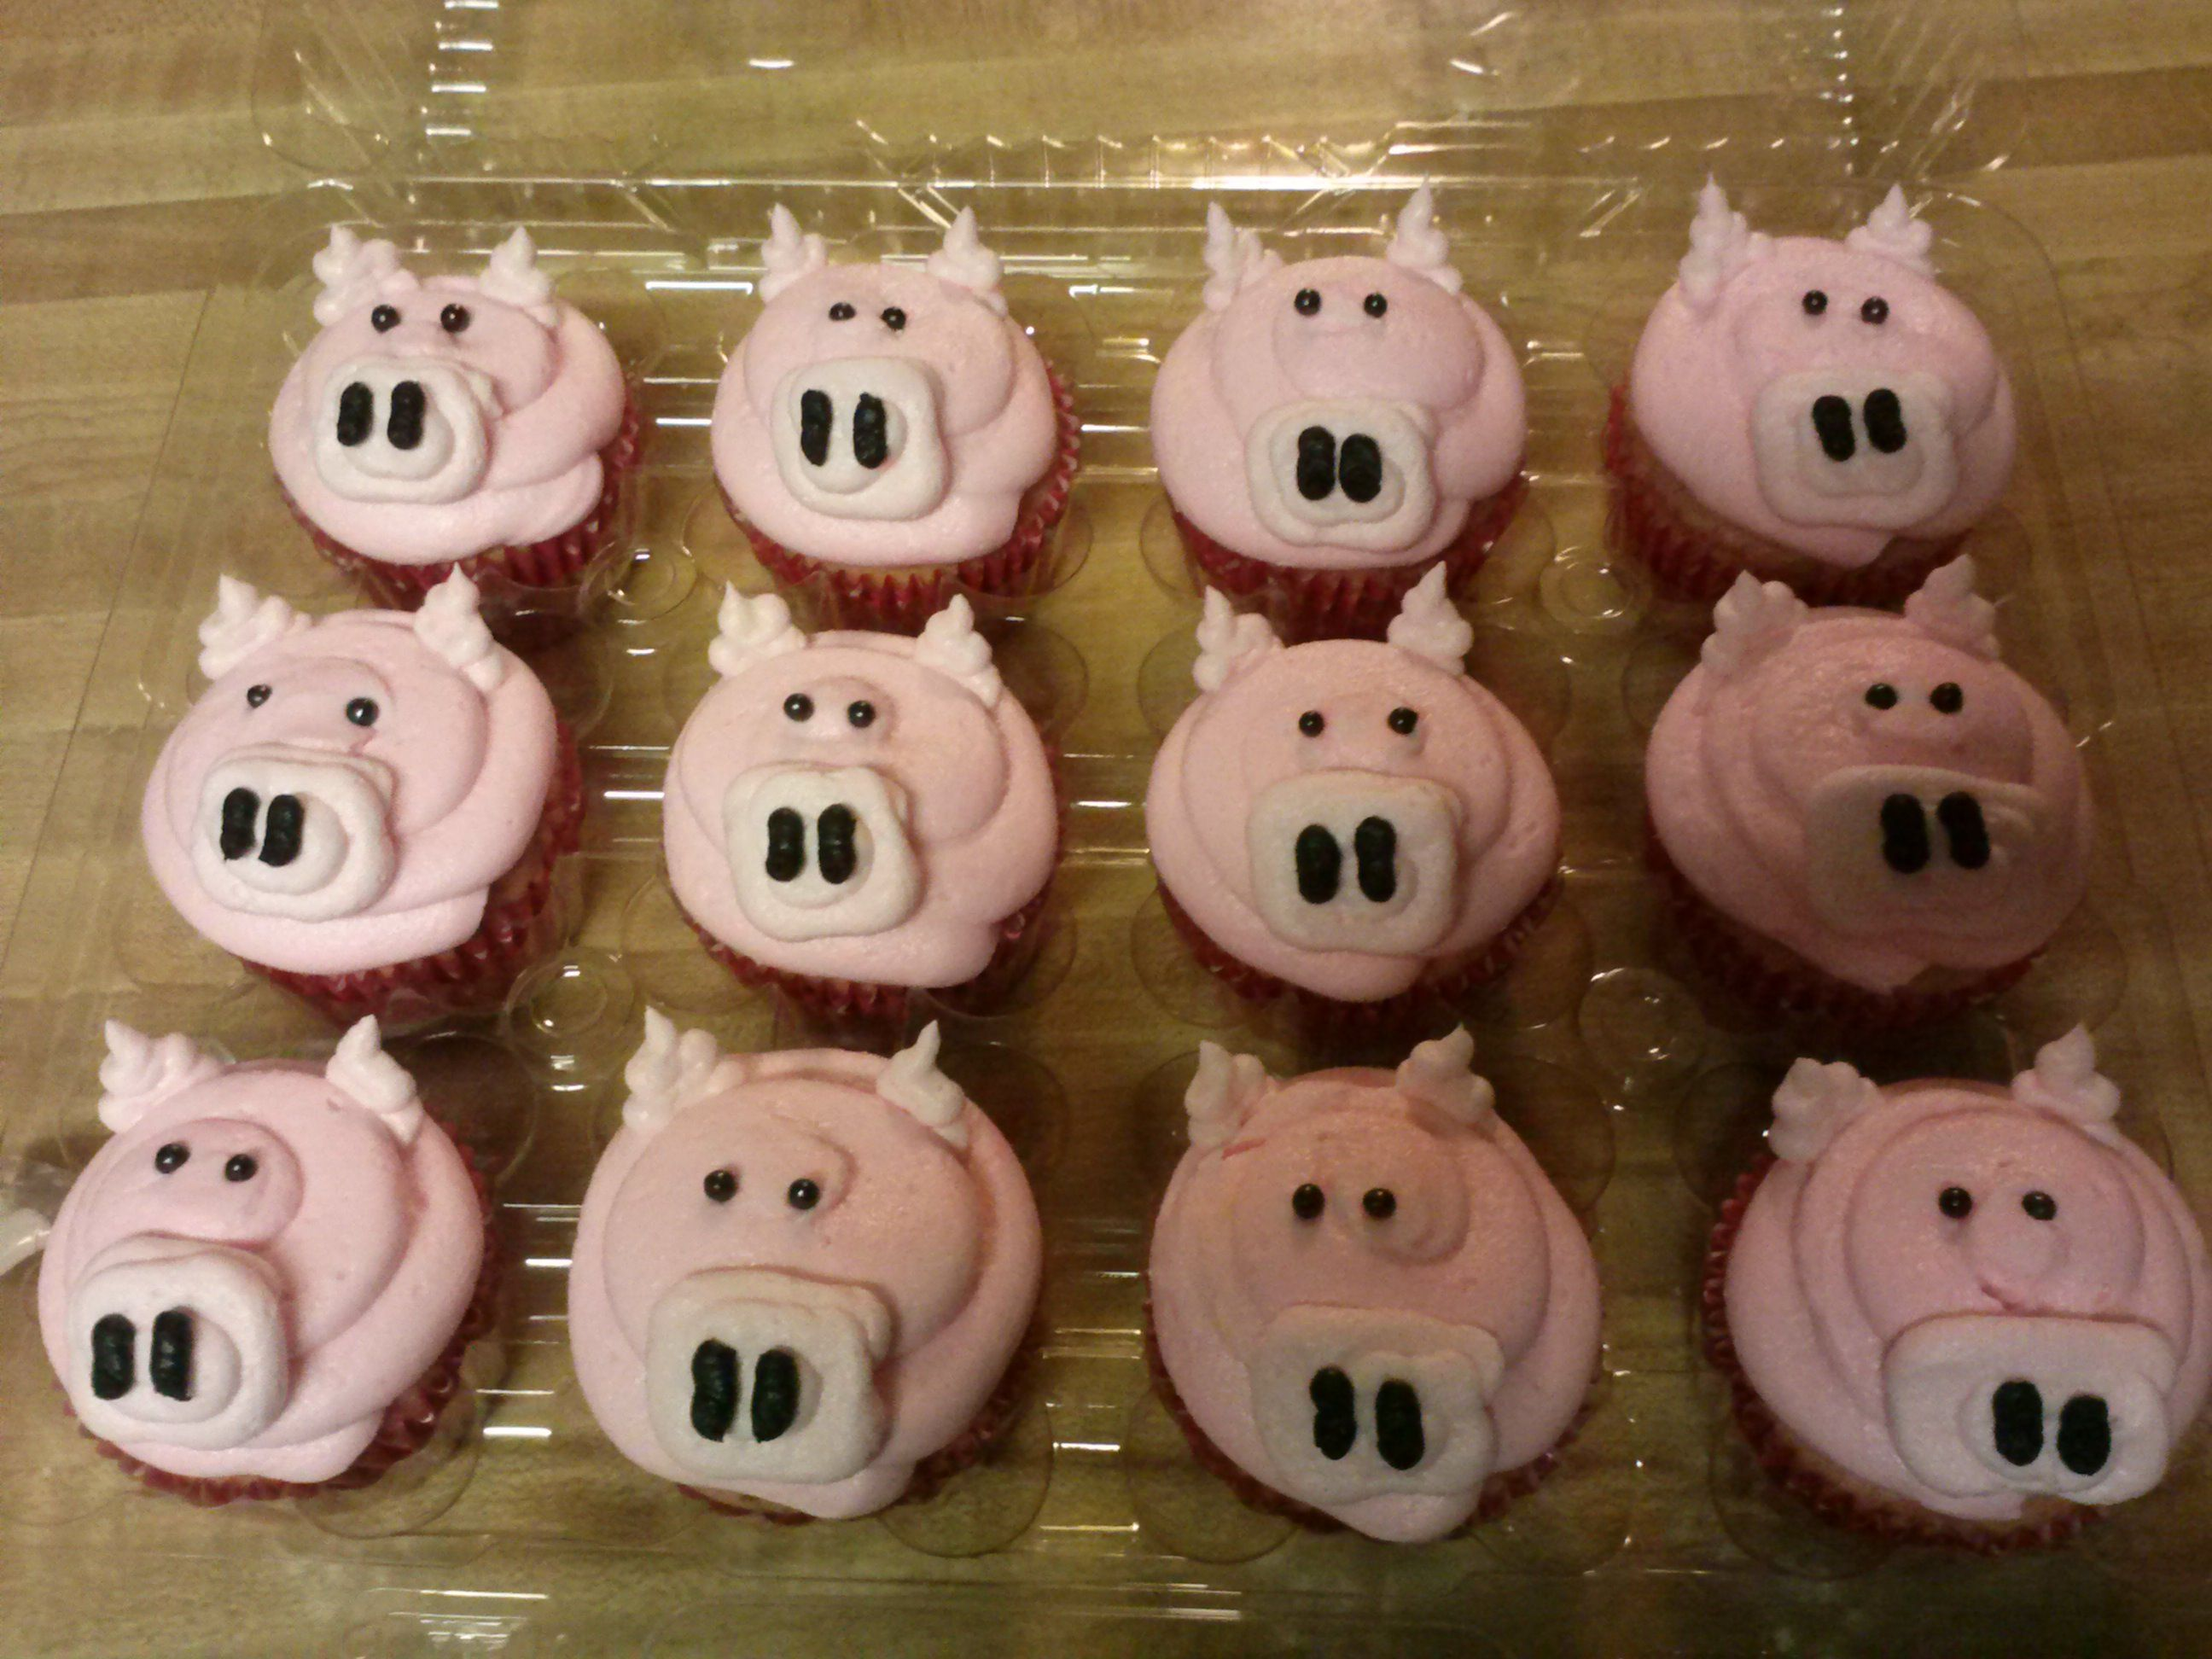 A drove of pigs!